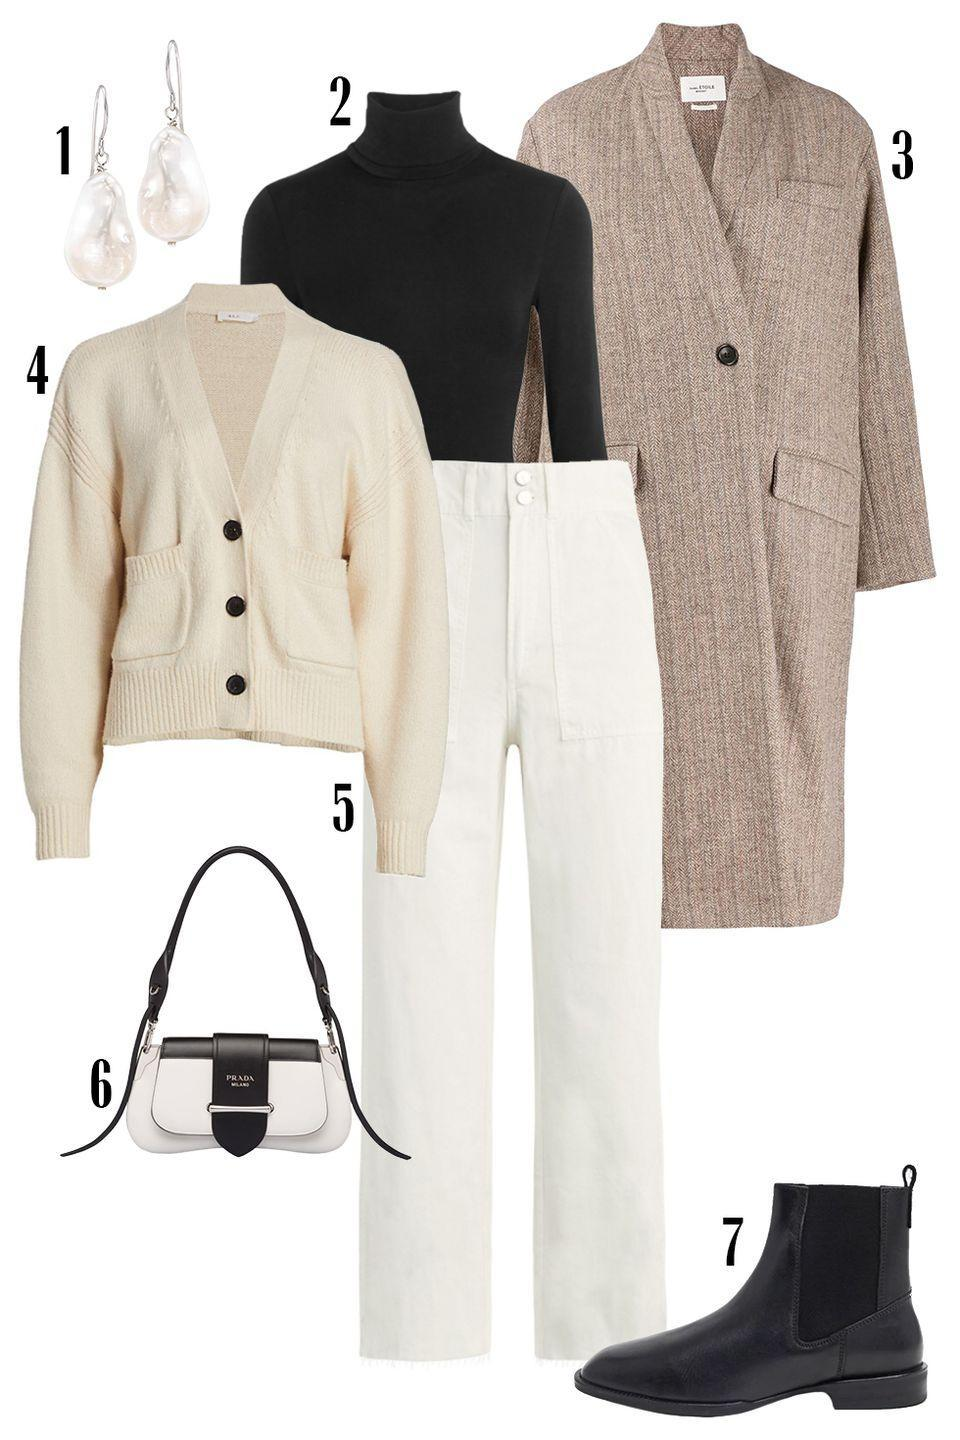 """<p>In a wardrobe rut? Go back to the classics—the essential pieces that you've built your wardrobe on. The white trouser, perfectly roomy cardigan, sturdy Chelsea boot, and slightly slouchy wool coat will never let you down.</p><p>Shop the pieces: <em><a href=""""https://www.amazon.com/Ross-Simons-12-13mm-Cultured-Earrings-Sterling/dp/B07BKS7PD3/ref=sr_1_17_sspa"""" rel=""""nofollow noopener"""" target=""""_blank"""" data-ylk=""""slk:Pearl Drop Earrings"""" class=""""link rapid-noclick-resp"""">Pearl Drop Earrings</a></em><em>s</em><em>,</em> $71; <em><a href=""""https://www.net-a-porter.com/en-us/shop/product/wolford/colorado-thong-bodysuit/618045"""" rel=""""nofollow noopener"""" target=""""_blank"""" data-ylk=""""slk:Wolford Colorado Bodysuit"""" class=""""link rapid-noclick-resp"""">Wolford Colorado Bodysuit</a></em><em>,</em> $250; <em><a href=""""https://www.24s.com/en-us/henlo-coat-isabel-marant-etoile_EIMD45AN?defaultSku=EIMD45ANBEIWF04000&color=Beige&lgw_code=4181-EIMD45ANBEIWF04000&gclid=Cj0KCQiAj9iBBhCJARIsAE9qRtBM9p9l_ZJkiCVRZIh07Qx1CxM-ODzg6A4J72L4v7zTAZSpGFeq-K4aAtY1EALw_wcB&gclsrc=aw.ds"""" rel=""""nofollow noopener"""" target=""""_blank"""" data-ylk=""""slk:Isabel Marant Etoile Coat"""" class=""""link rapid-noclick-resp"""">Isabel Marant Etoile Coat</a></em>, $675; <em><a href=""""https://www.saksfifthavenue.com/product/a.l.c.-vincent-v-neck-knit-cardigan-0400013594848.html?dwvar_0400013594848_color=CREAM"""" rel=""""nofollow noopener"""" target=""""_blank"""" data-ylk=""""slk:A.L.C. Cardigan"""" class=""""link rapid-noclick-resp"""">A.L.C. Cardigan</a></em><em>,</em> $45; <em><a href=""""https://www.saksfifthavenue.com/product/joe-s-jeans-the-blake-utility-pants-0400013563045.html"""" rel=""""nofollow noopener"""" target=""""_blank"""" data-ylk=""""slk:Joe's Jeans"""" class=""""link rapid-noclick-resp"""">Joe's Jeans</a></em>, $188, <em><a href=""""https://www.farfetch.com/shopping/women/prada-sidonie-logo-shoulder-bag-item-14558327.aspx?storeid=11241"""" rel=""""nofollow noopener"""" target=""""_blank"""" data-ylk=""""slk:Prada Shoulder Bag"""" class=""""link rapid-noclick-resp"""">Prada Shoulder Bag</a></em>, $3,200; <em><a"""